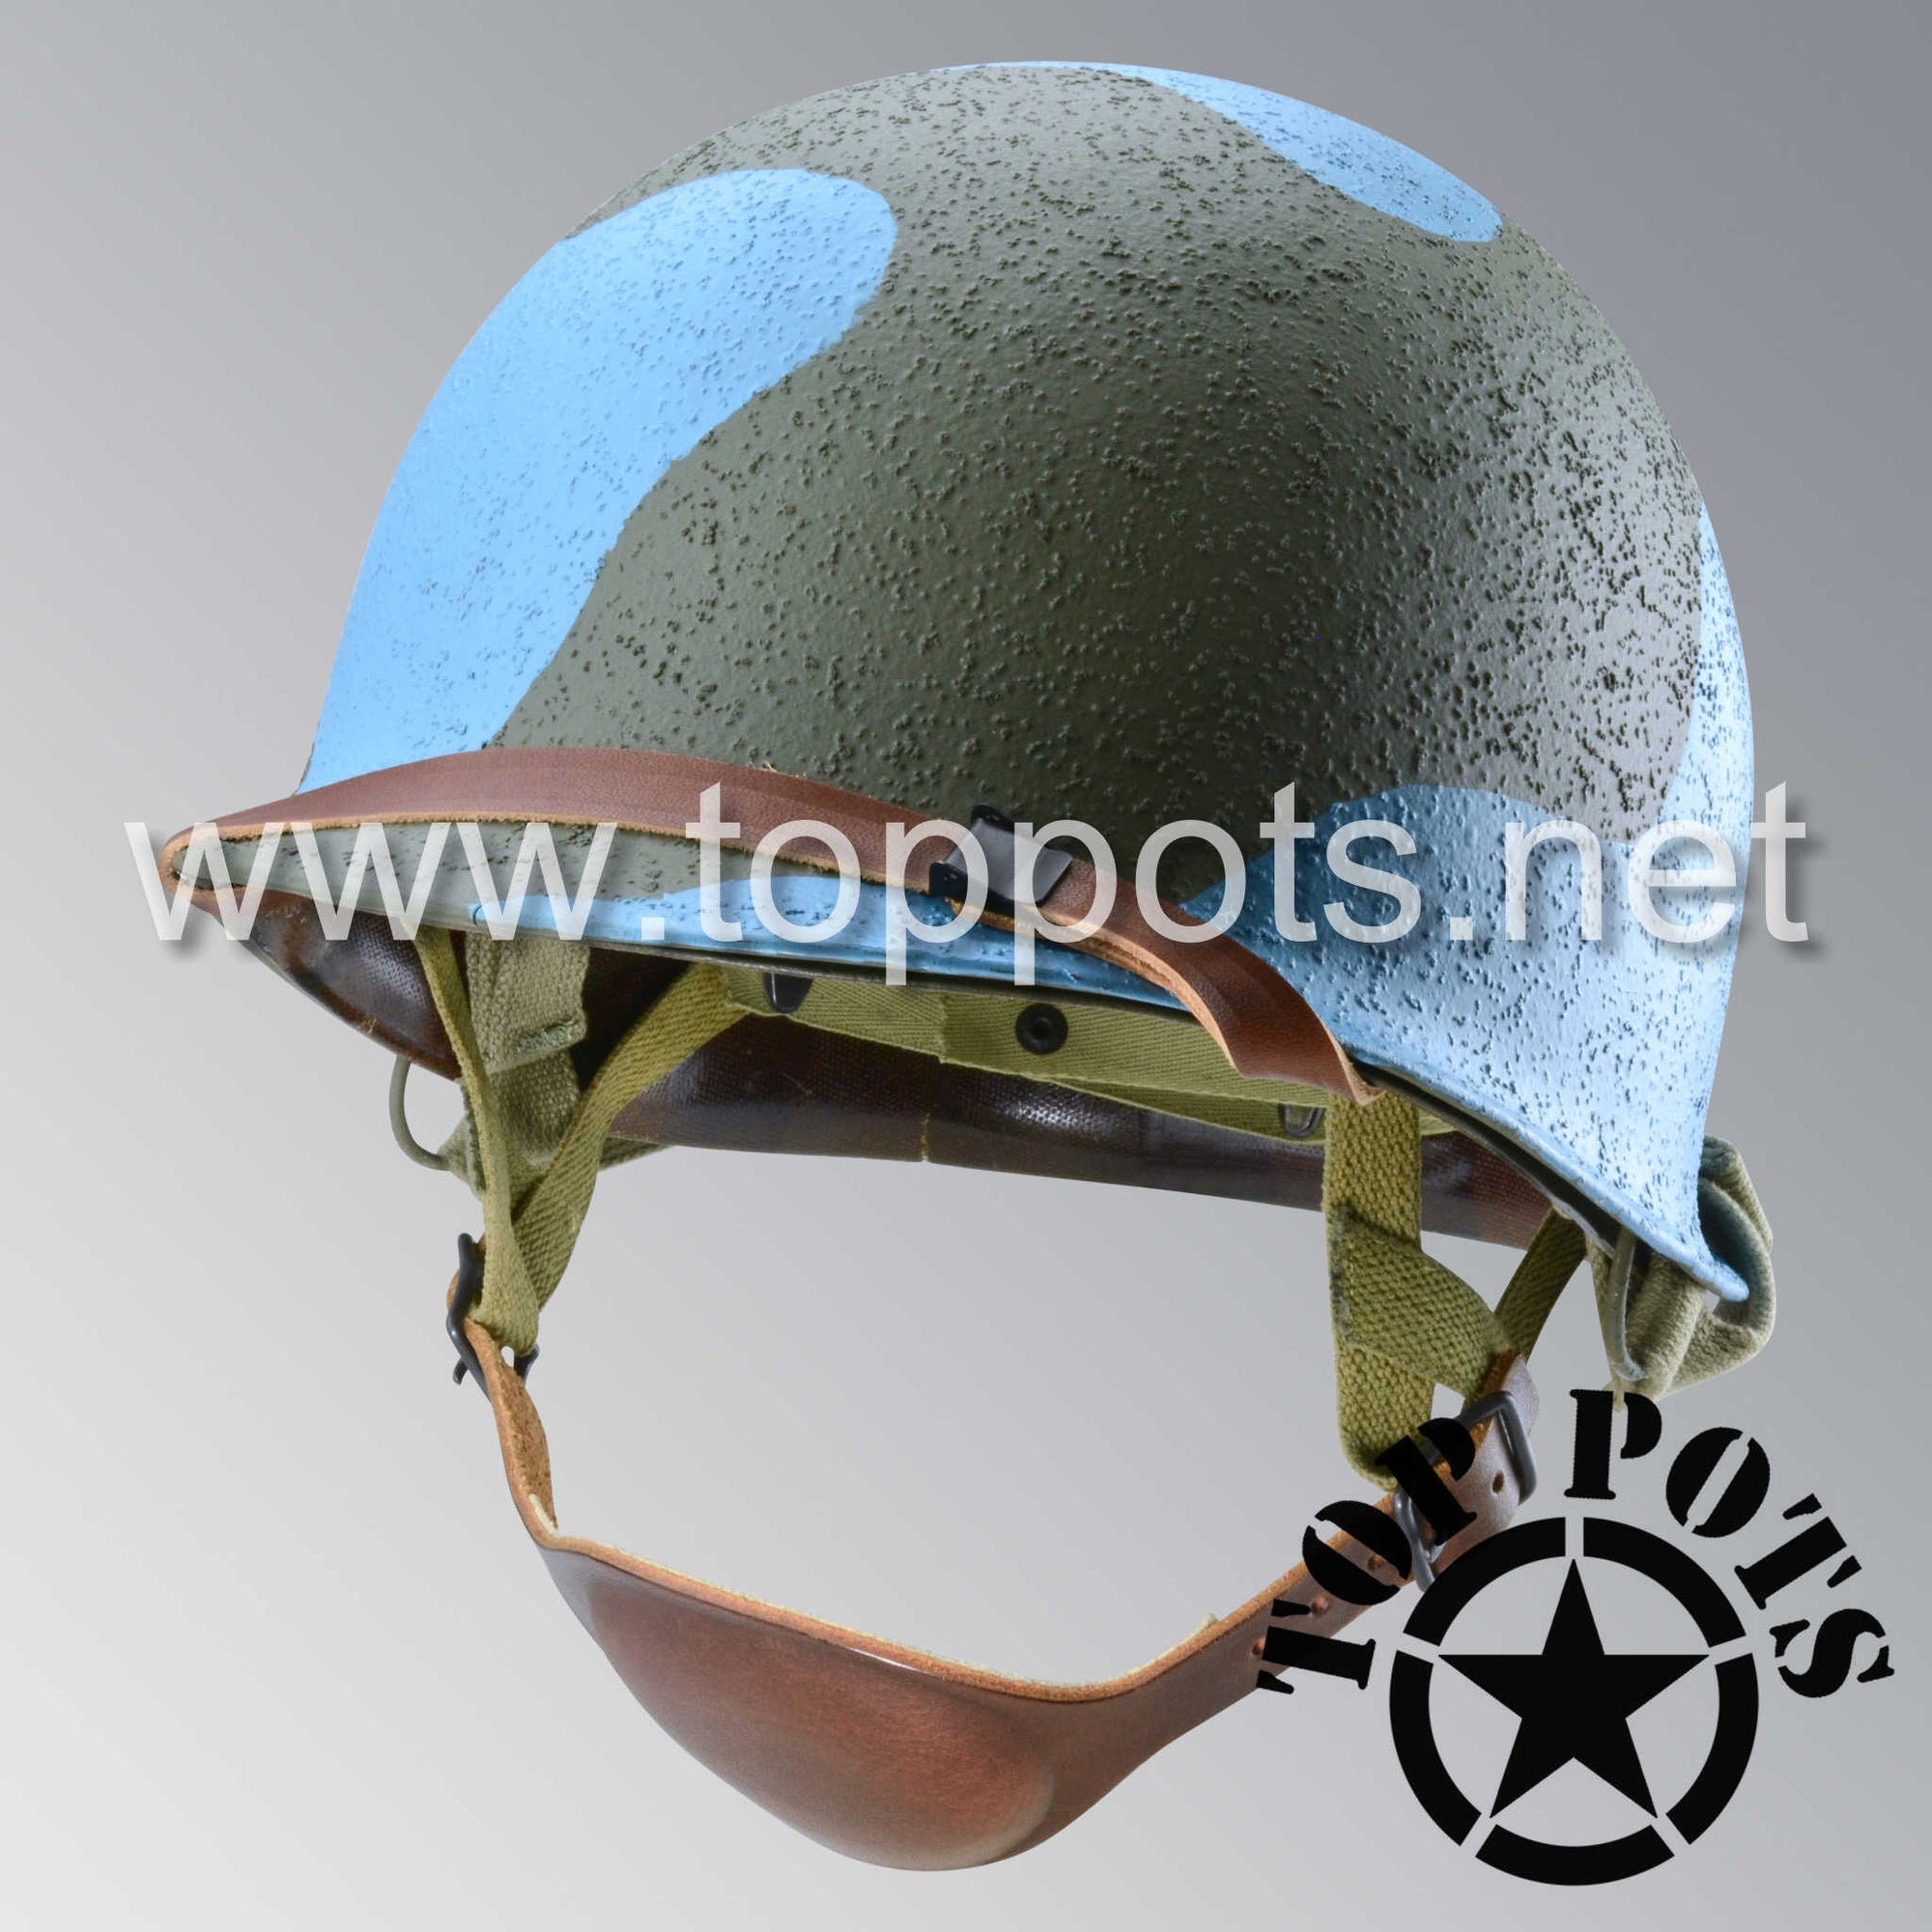 Image 1 of WWII USMC Marine Corps M2 Para Marine Paratrooper Airborne Helmet D Bale Shell and Liner with Pacific Water Camouflage Emblem - Deep Ocean Blue